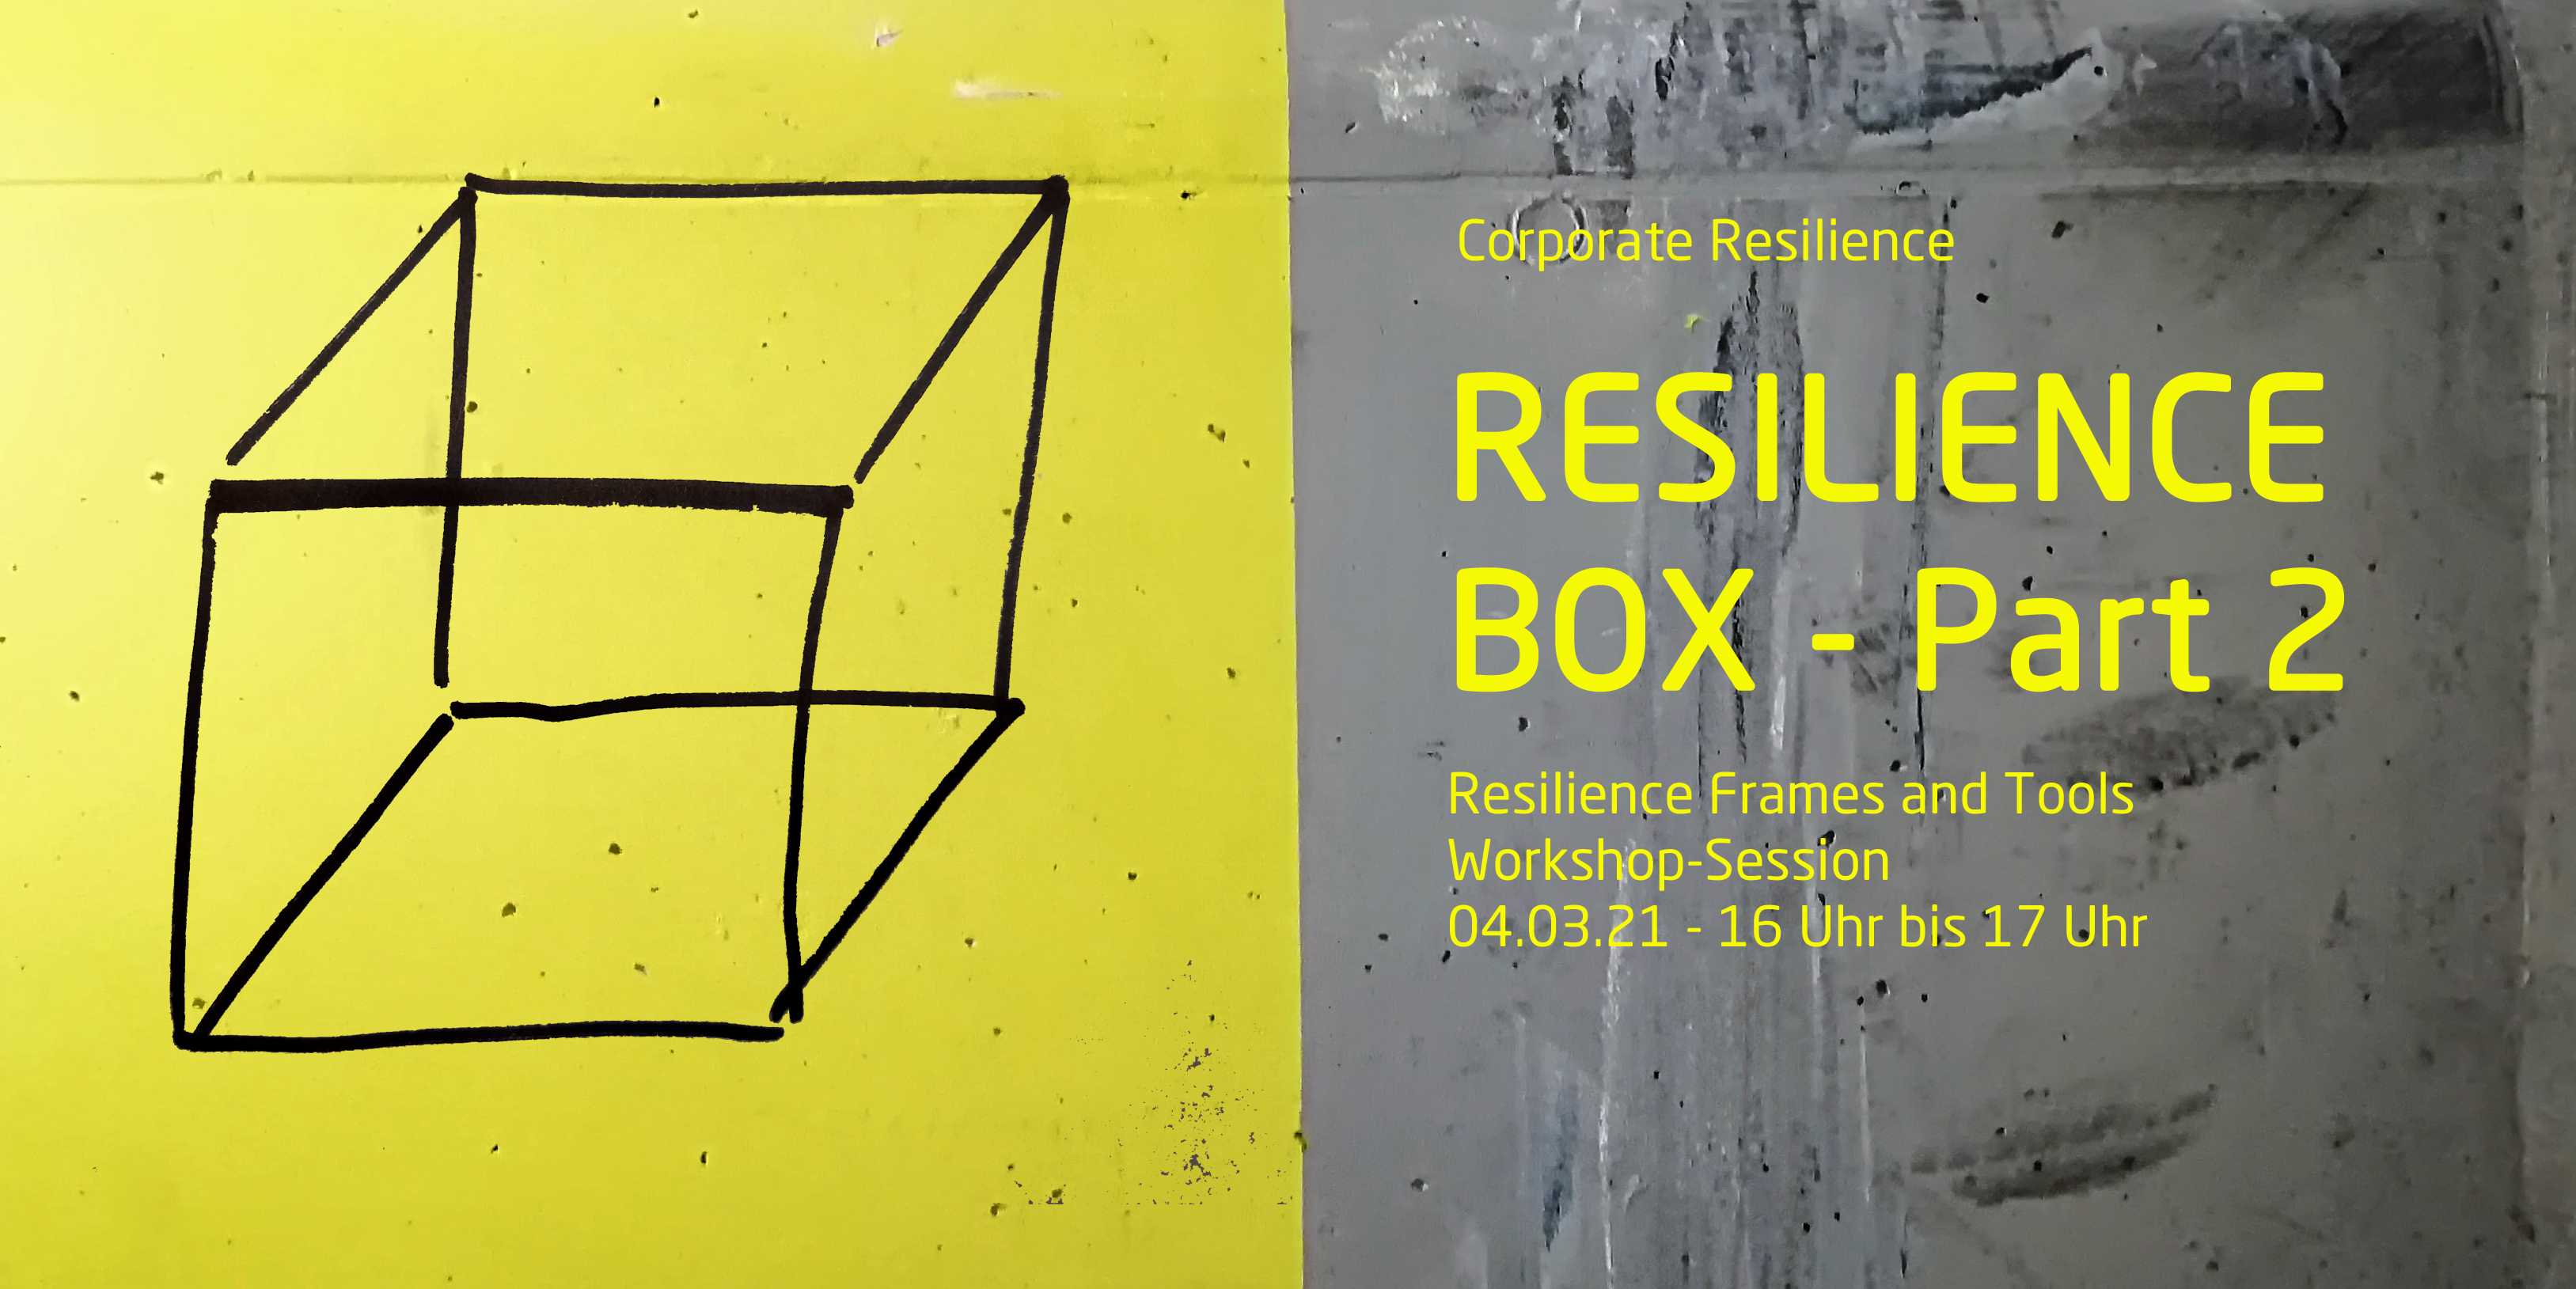 Corporate Resilience Workshop